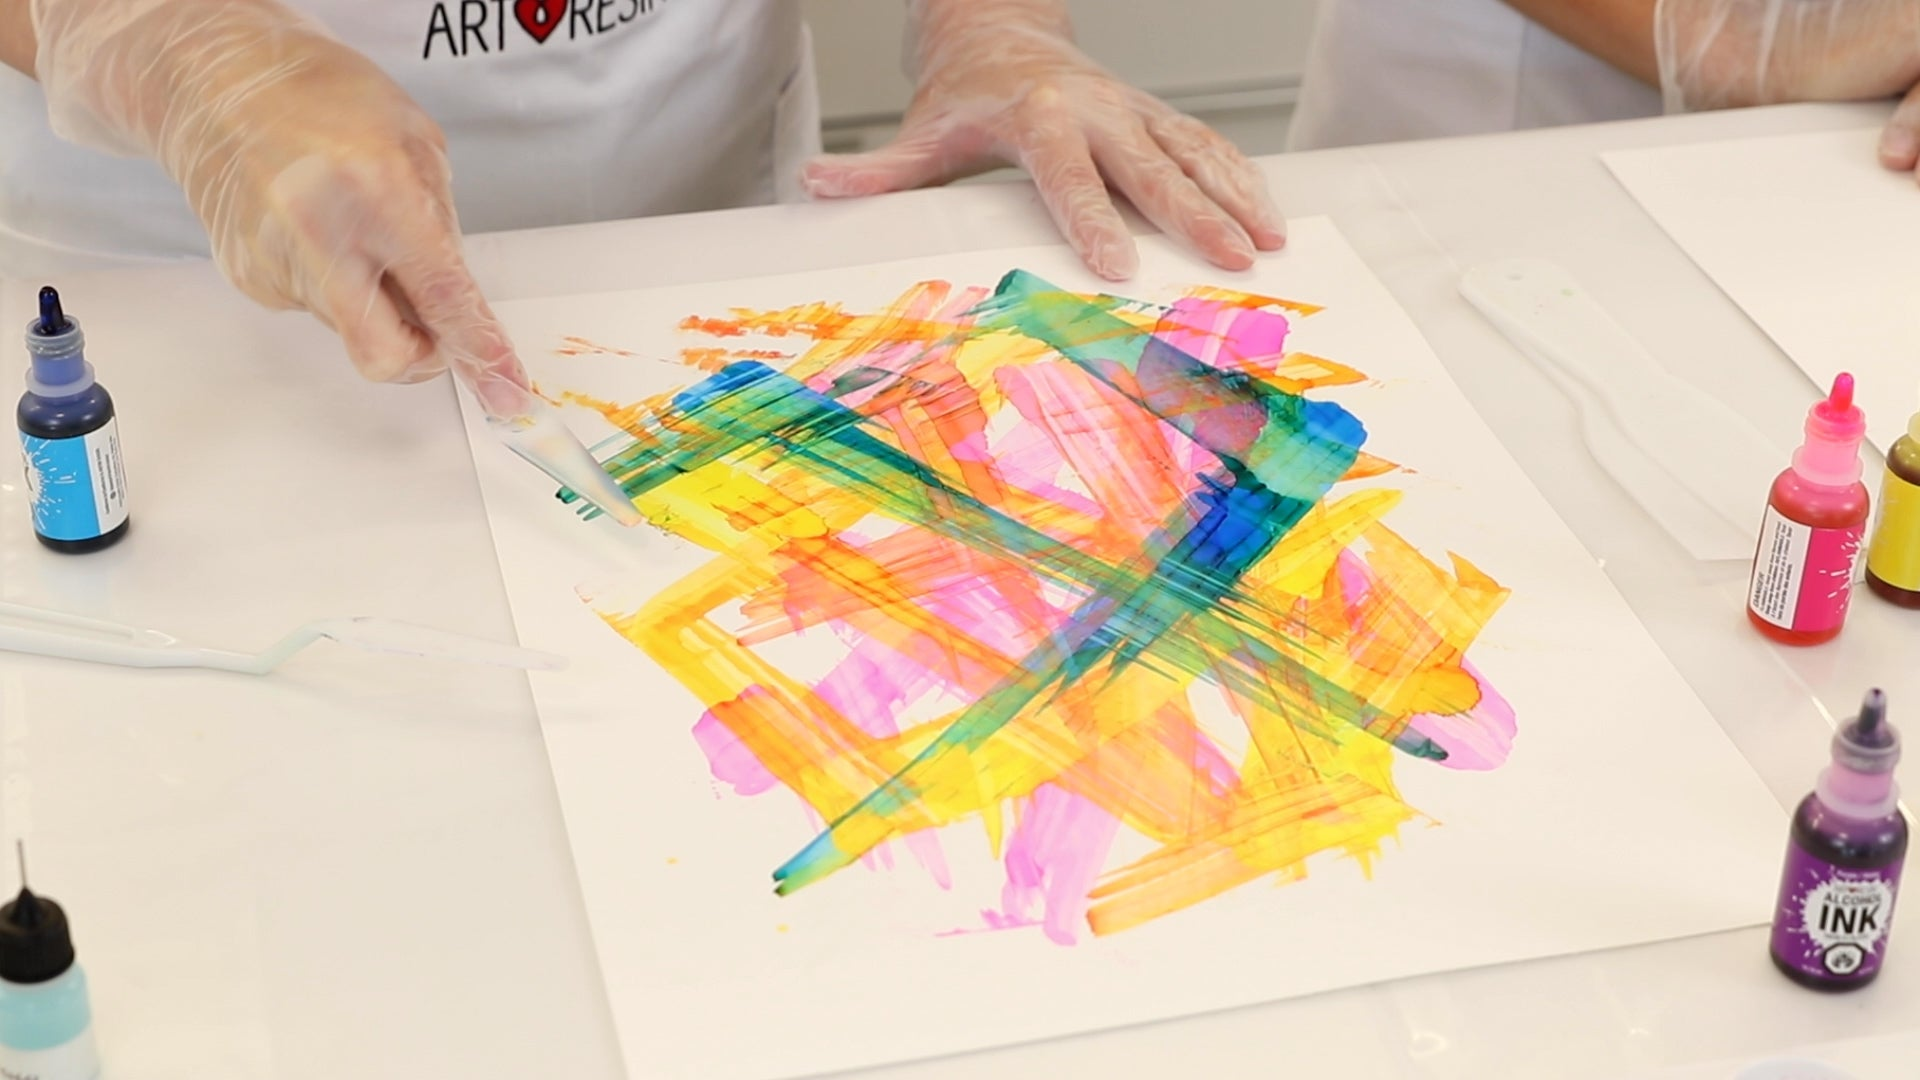 palette knife to apply alcohol ink to yupo paper